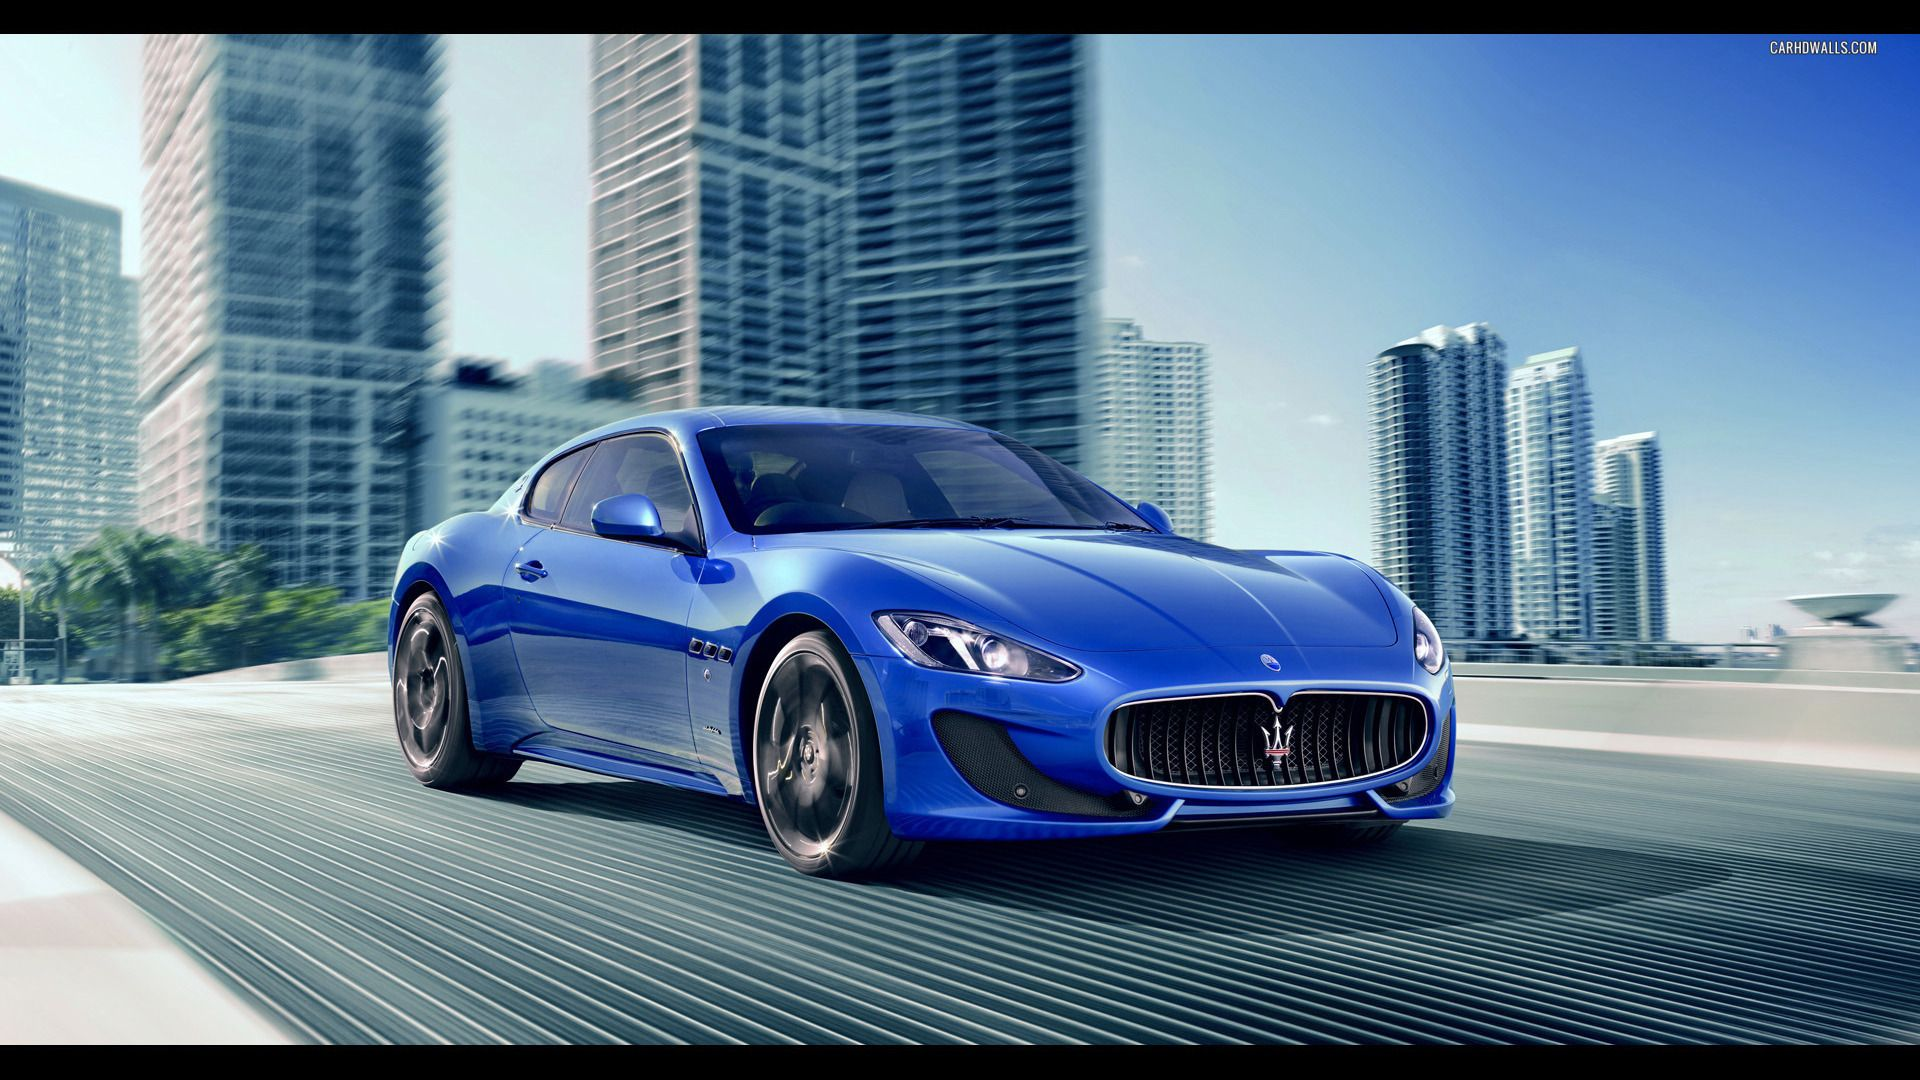 Maserati Granturismo Free Download Hd Wallpapers Hd Wallpapers Co Pinterest Maserati Granturismo Maserati And Hd Wallpaper